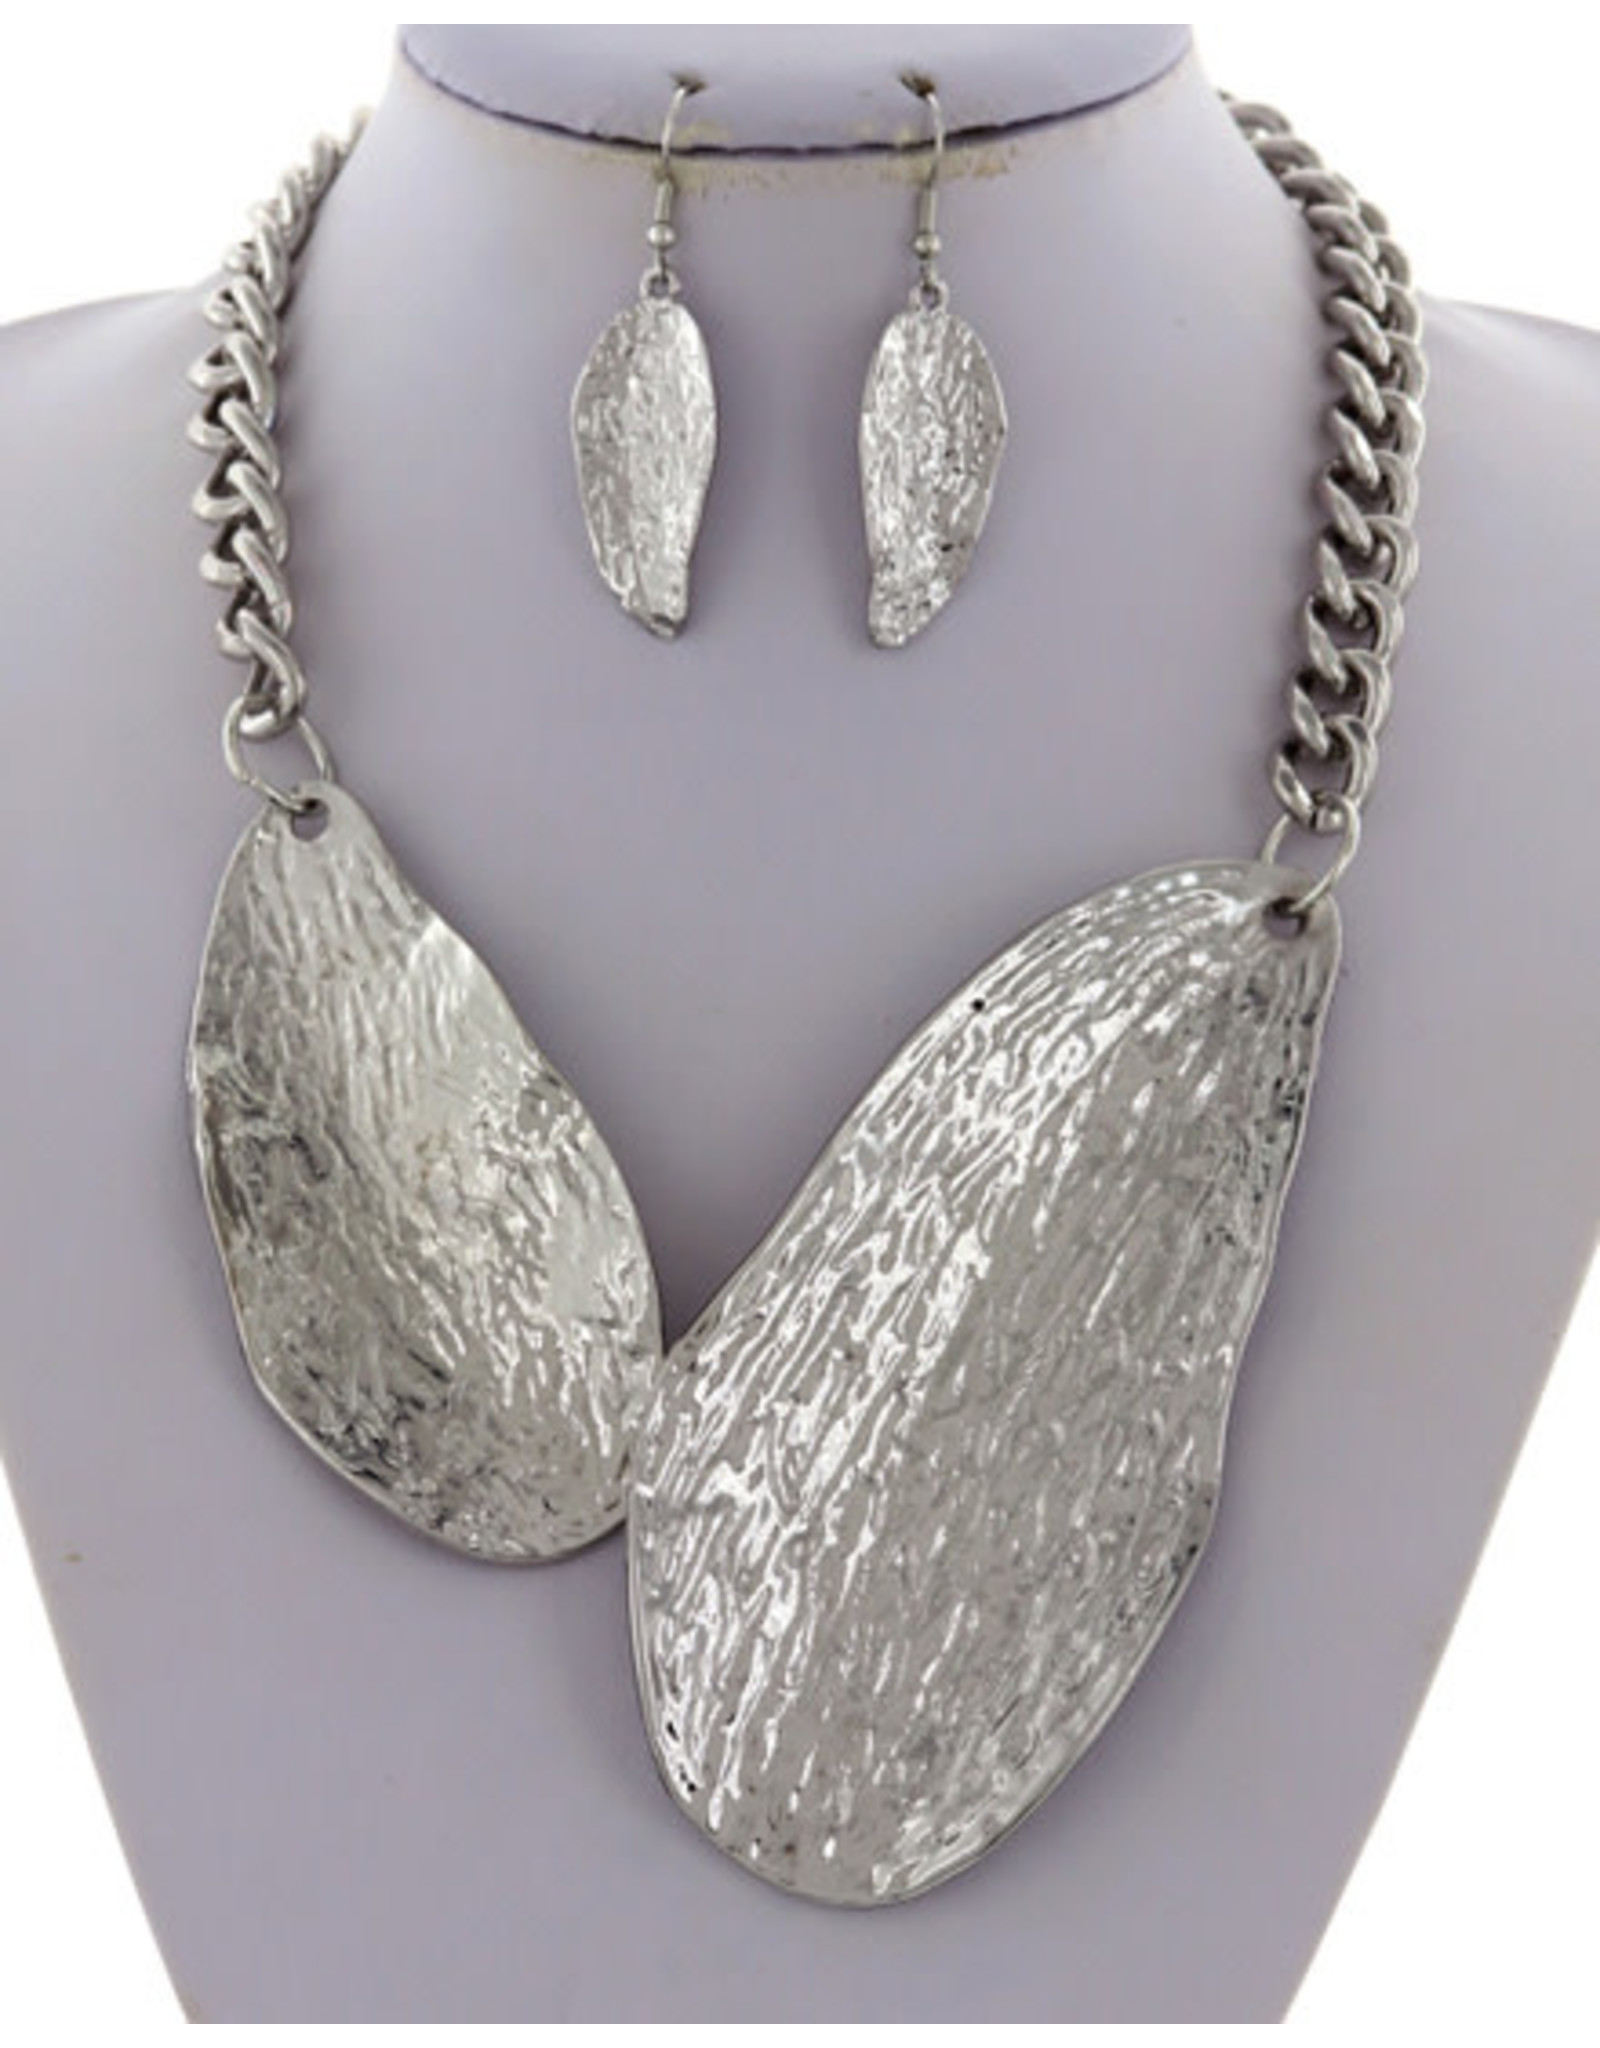 Hammered Metal Necklace & Earring Set